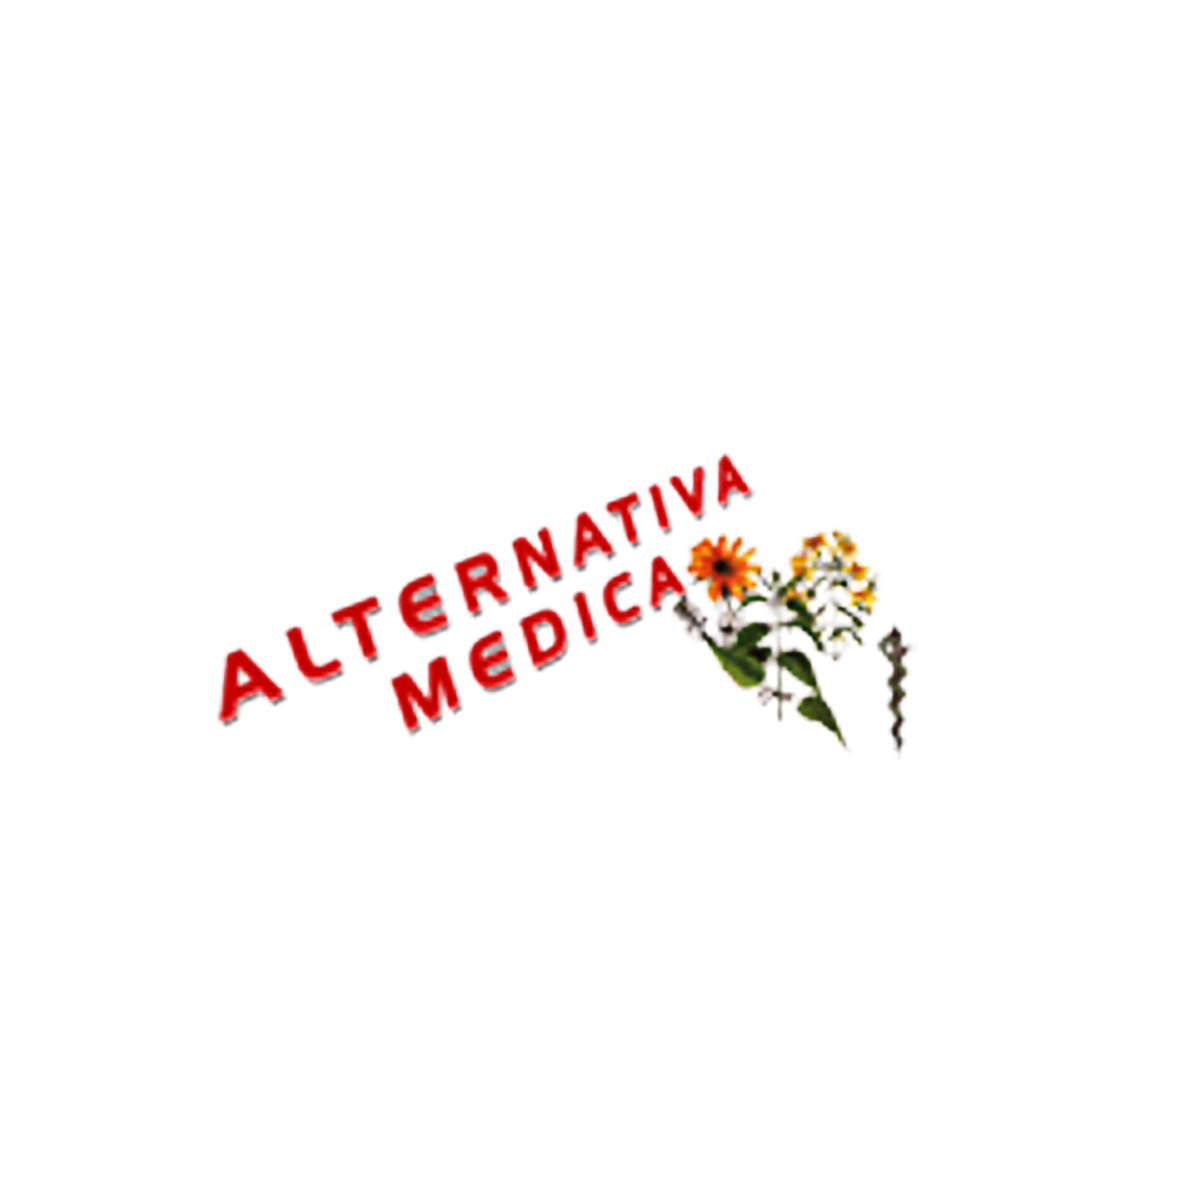 Alternativa medica